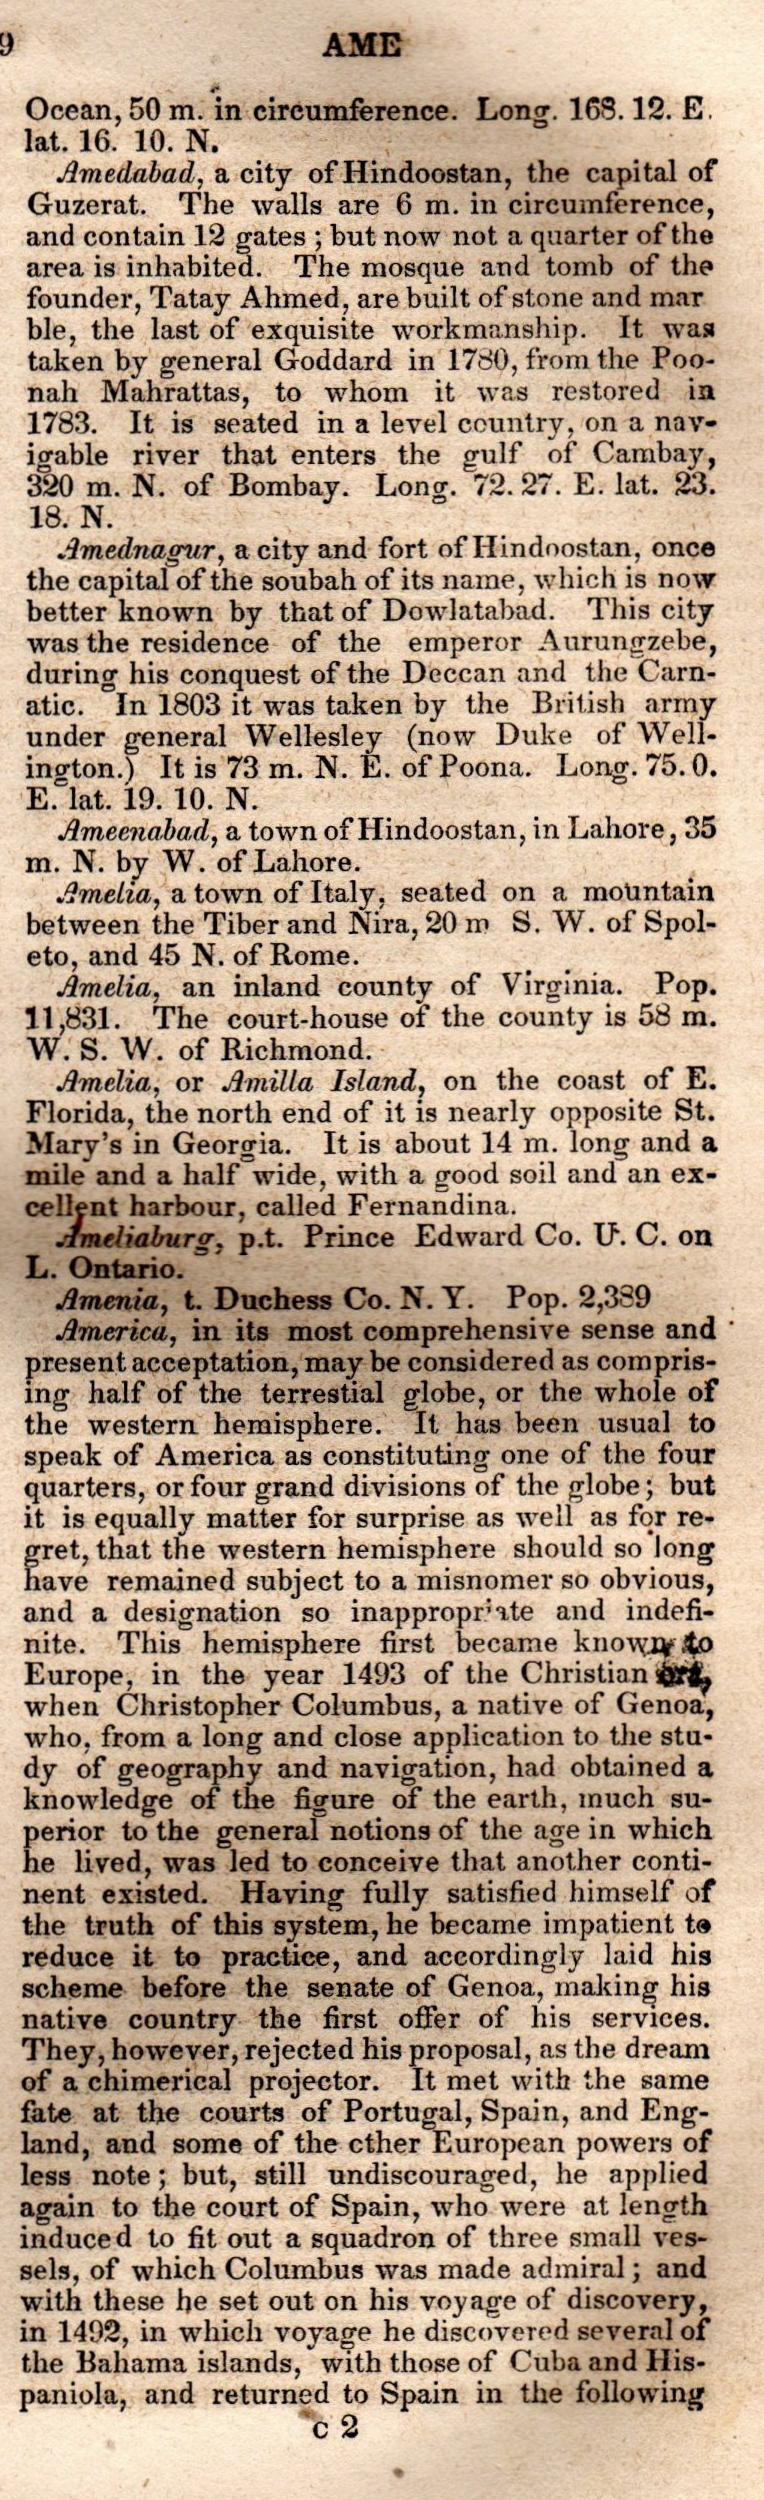 Brookes' Universal Gazetteer (1850), Page  29  Right Column